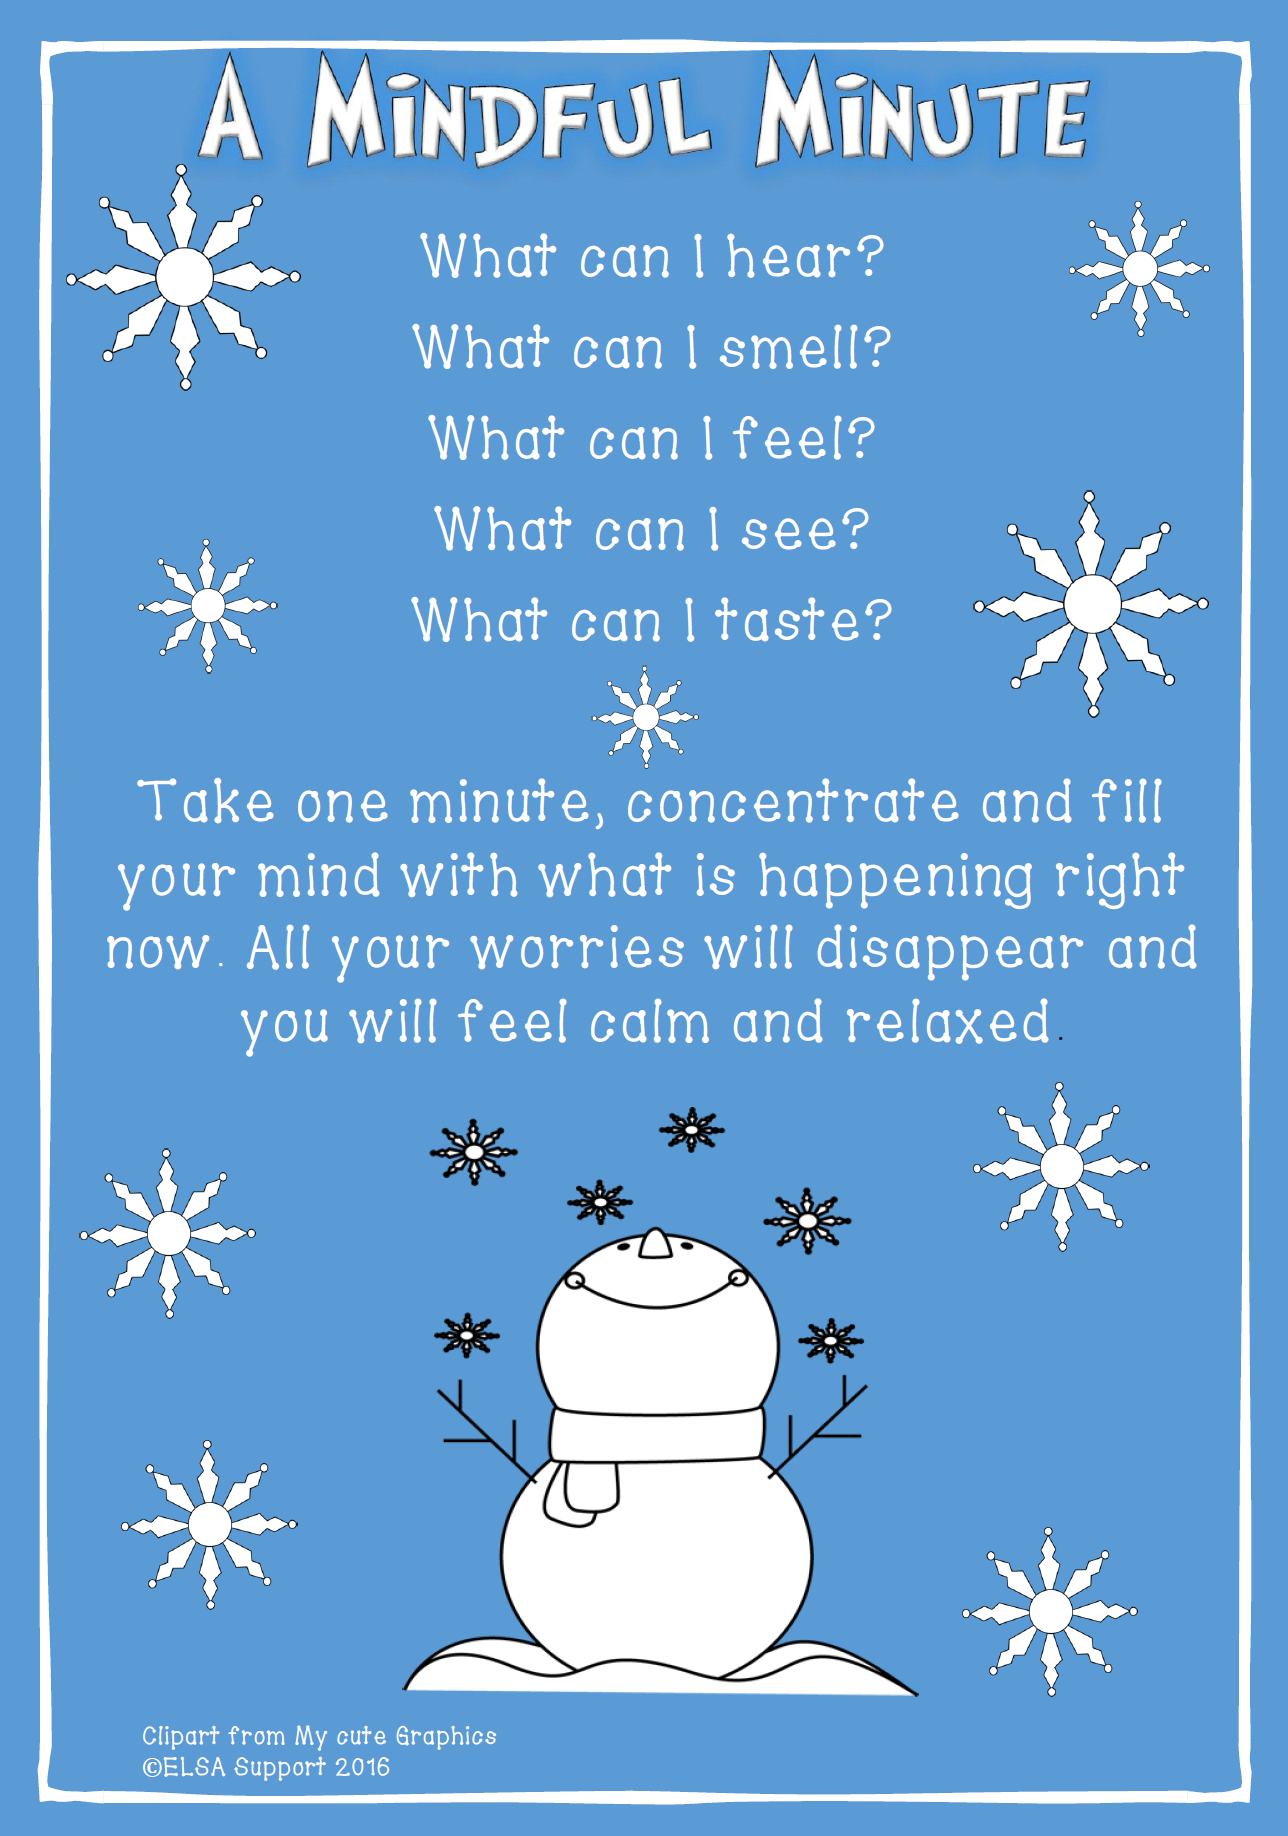 Mindful Minute Mindfulness Activities Mindfulness For